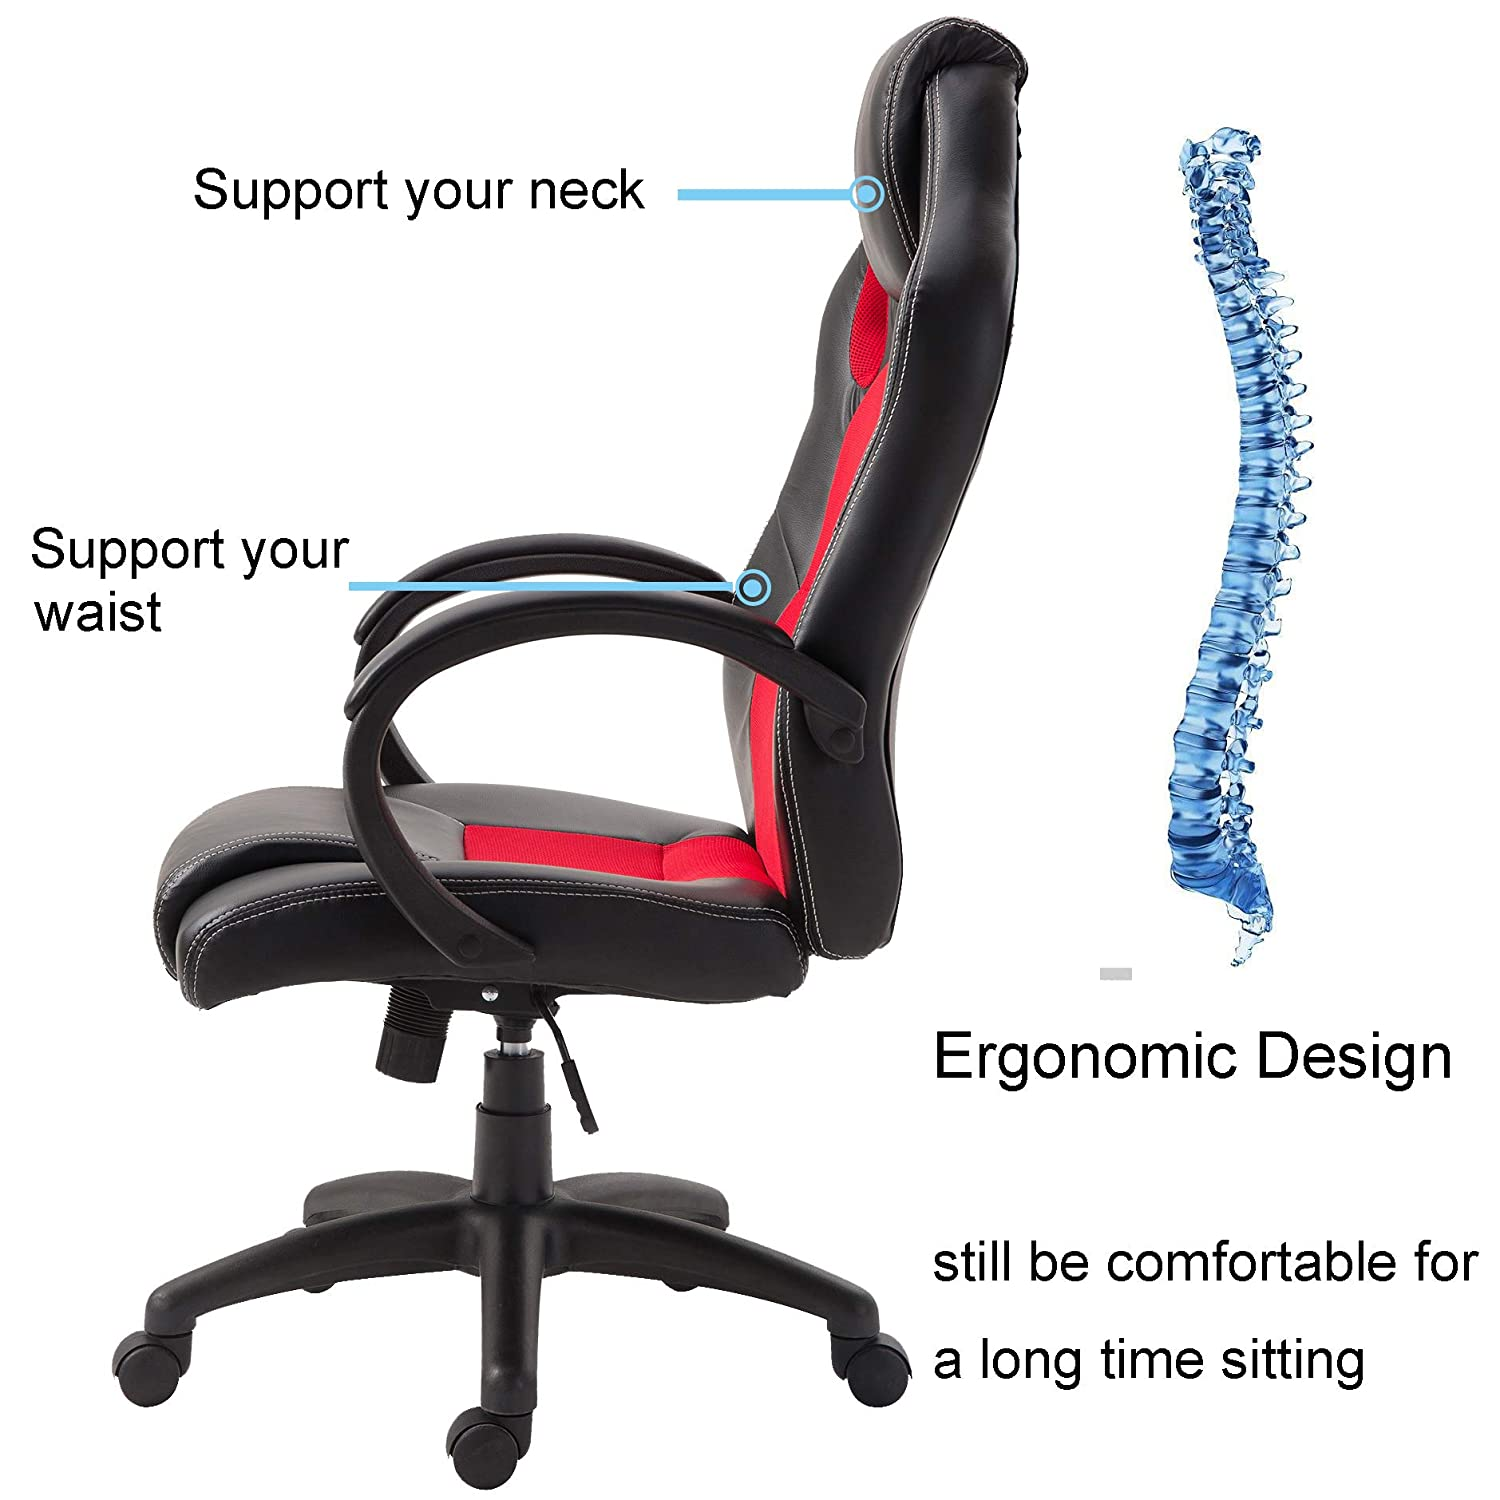 Windaze Gaming Computer Chairs Ergonomic Swivel Leather High Back Office Desk Chair Racing Style with Headrest Black and Red